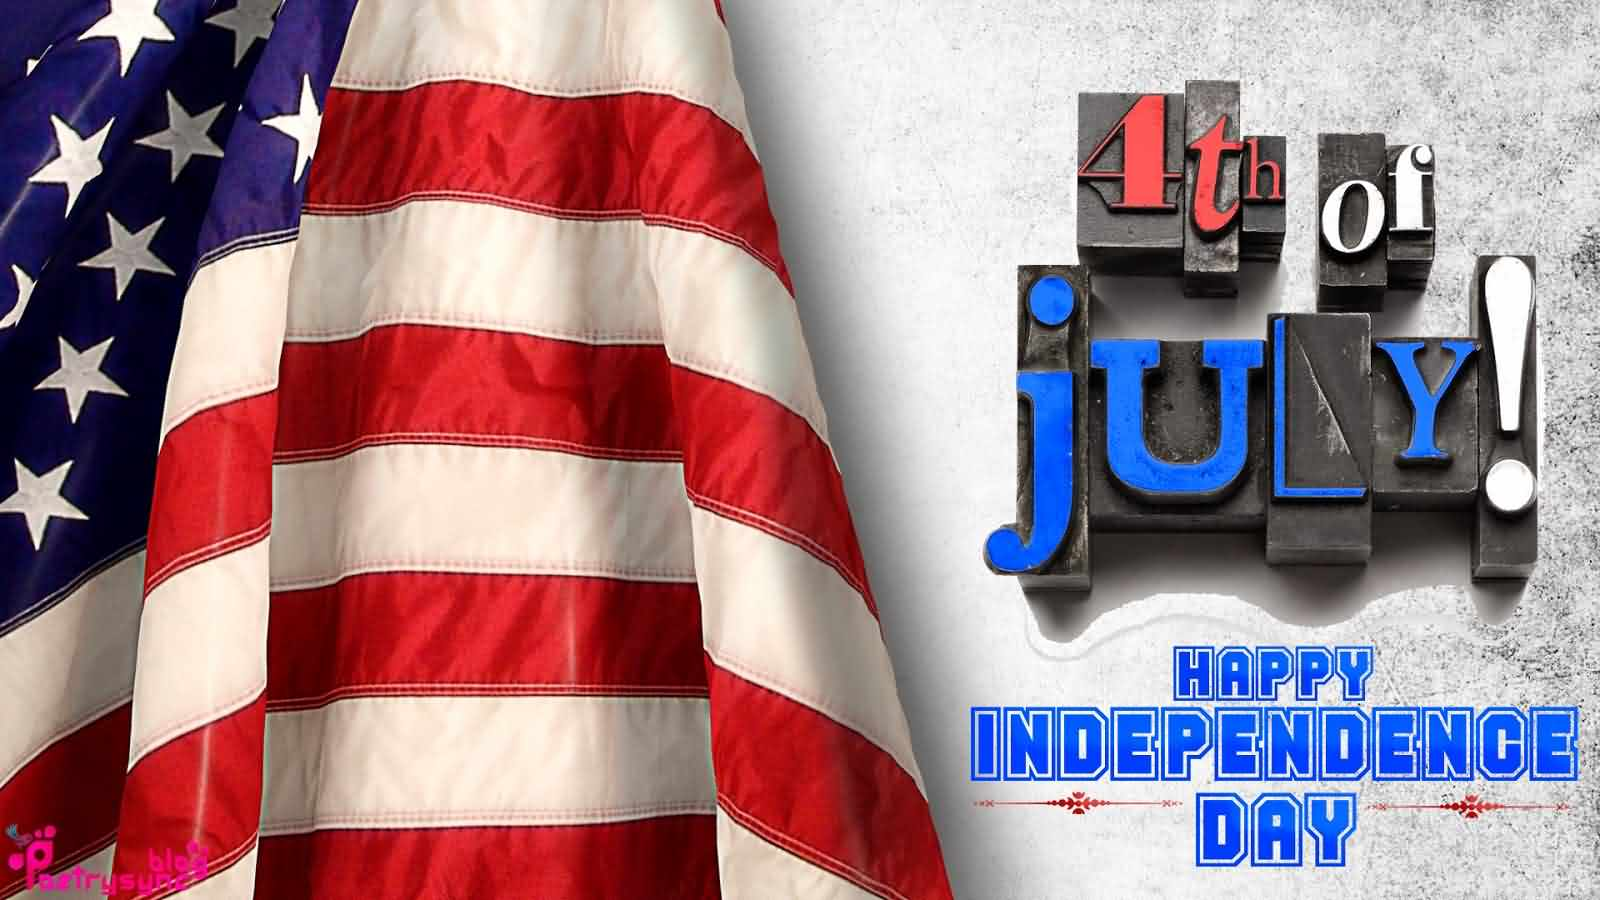 4th July Happy Independence Day Wishes Images